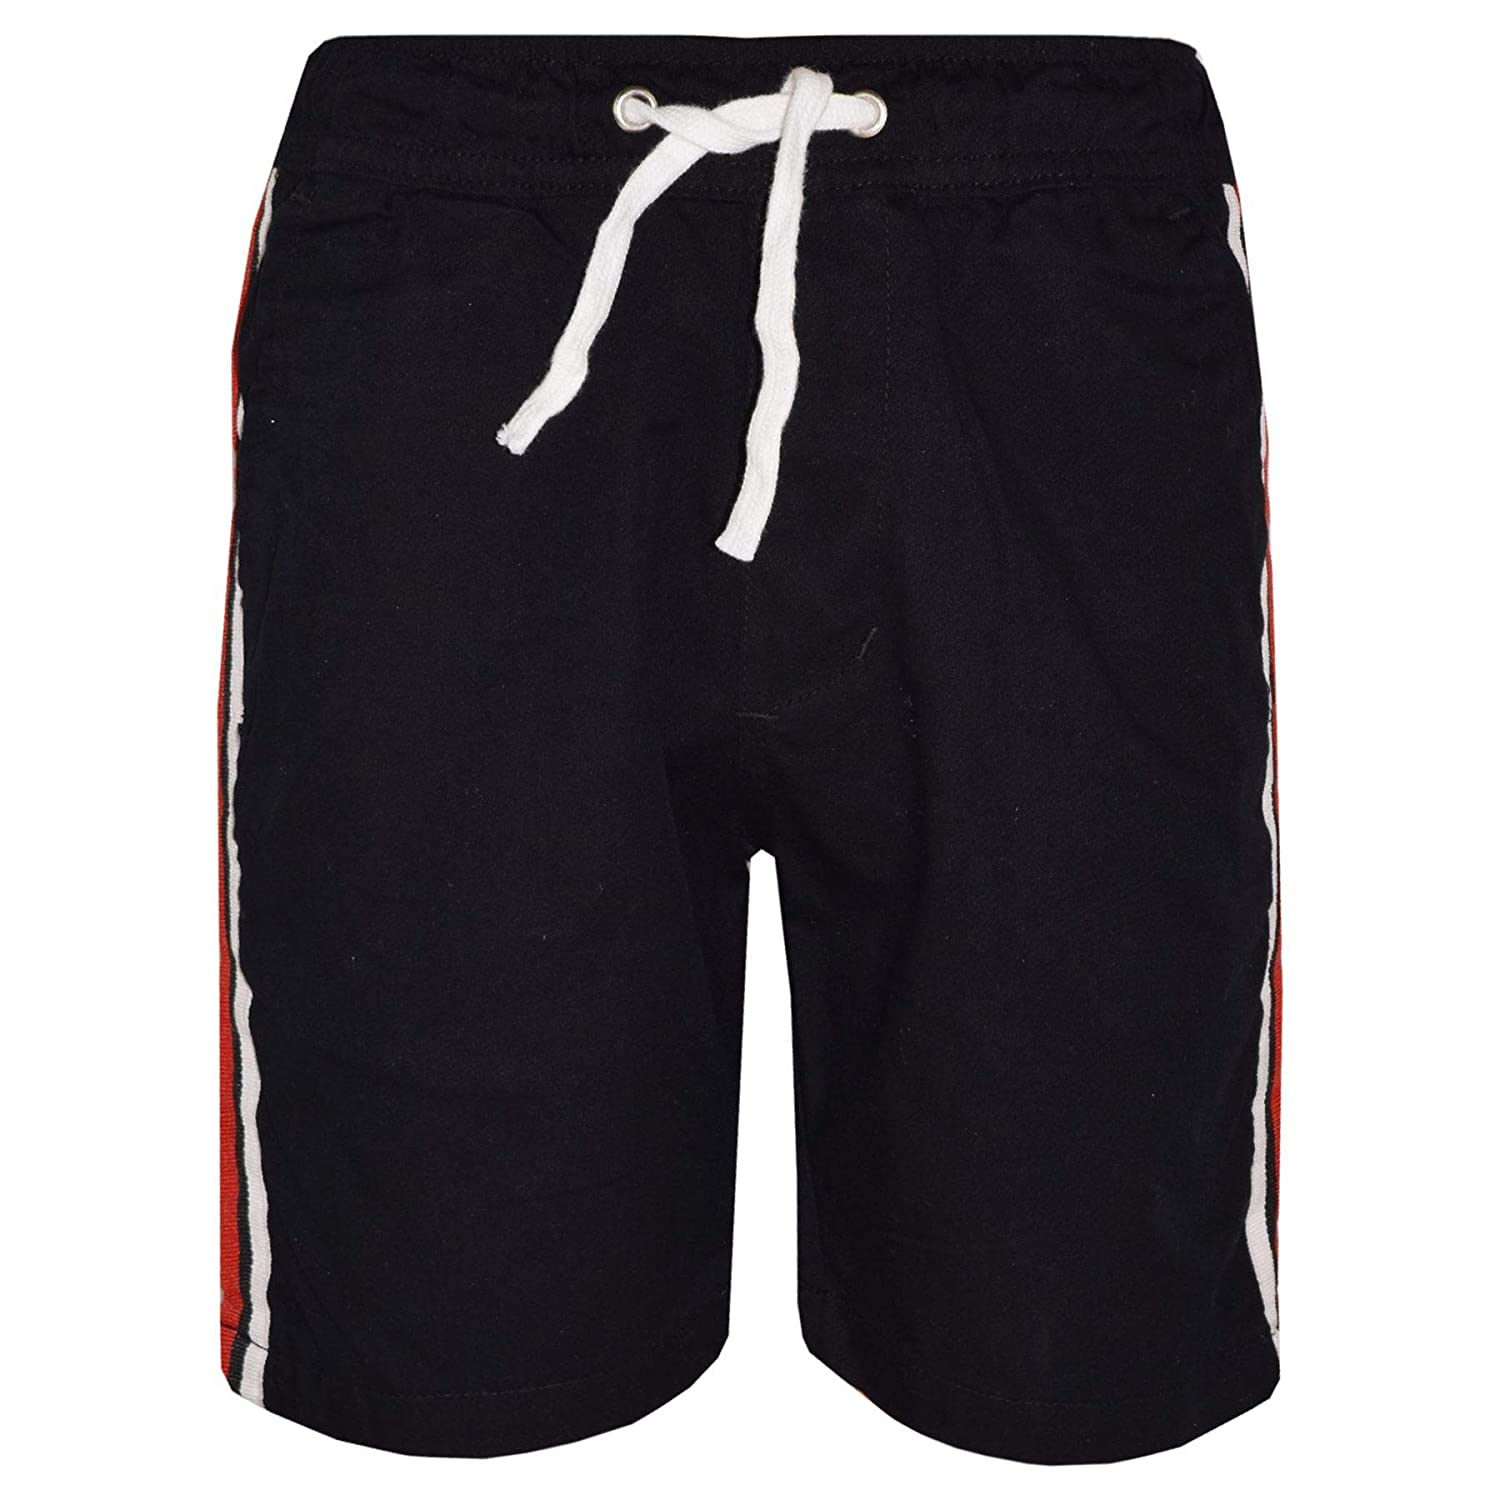 A2Z 4 Kids® Kids Girls Boys Shorts Contrast Stripes Cotton Black Chino Shorts Casual Knee Length Half Pant Age 5 6 7 8 9 10 11 12 13 Years